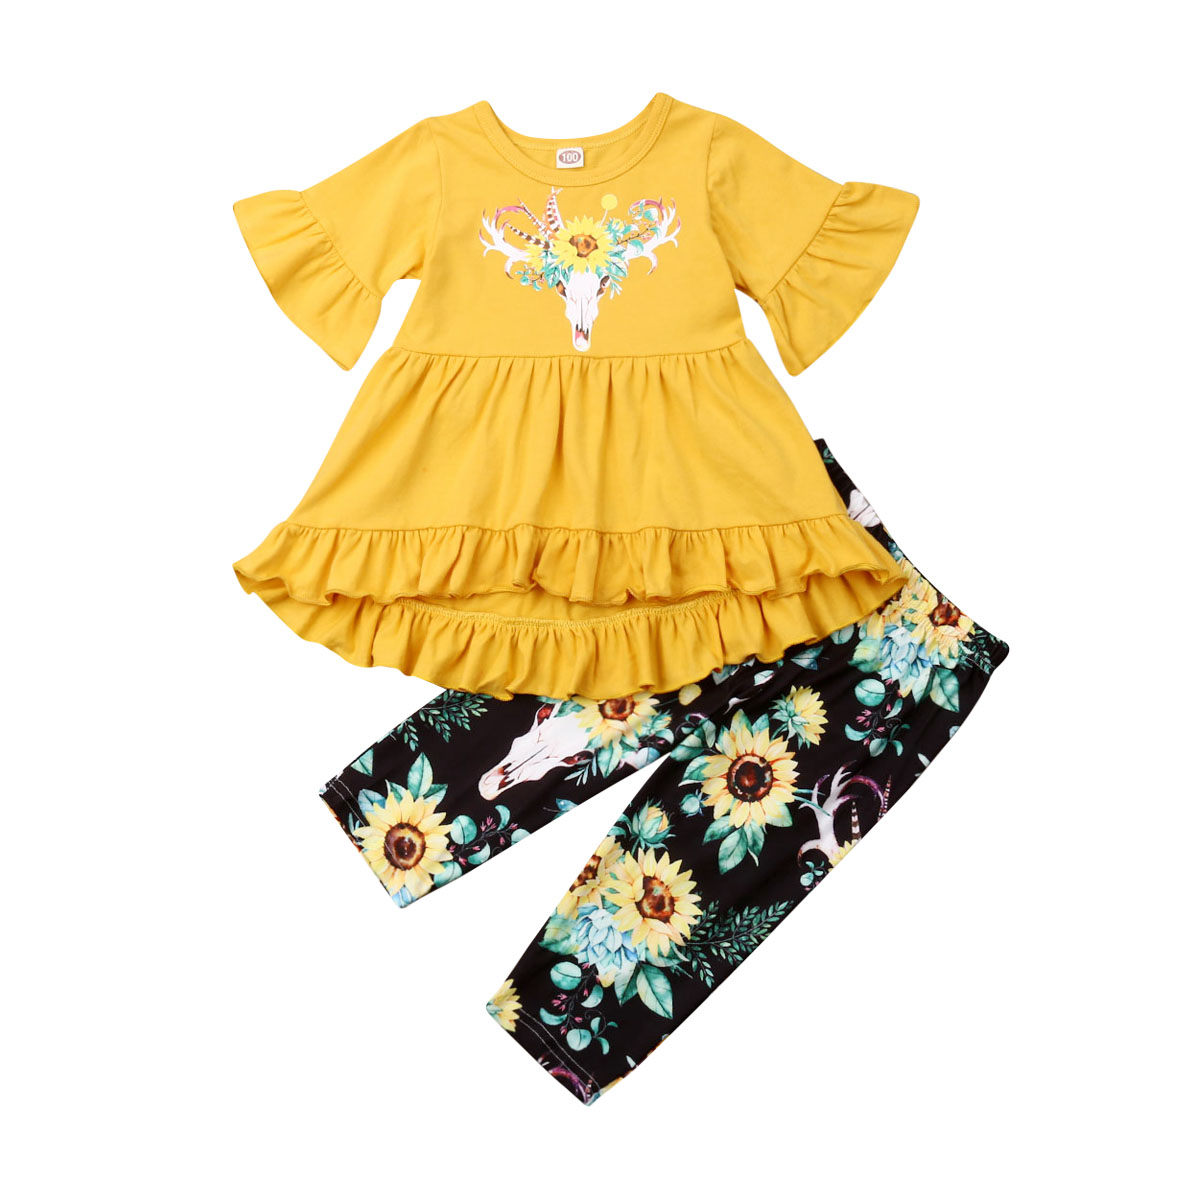 Boutique Toddler Kids Baby Girl Flower Top Dress Pants Legging Outfit Clothes